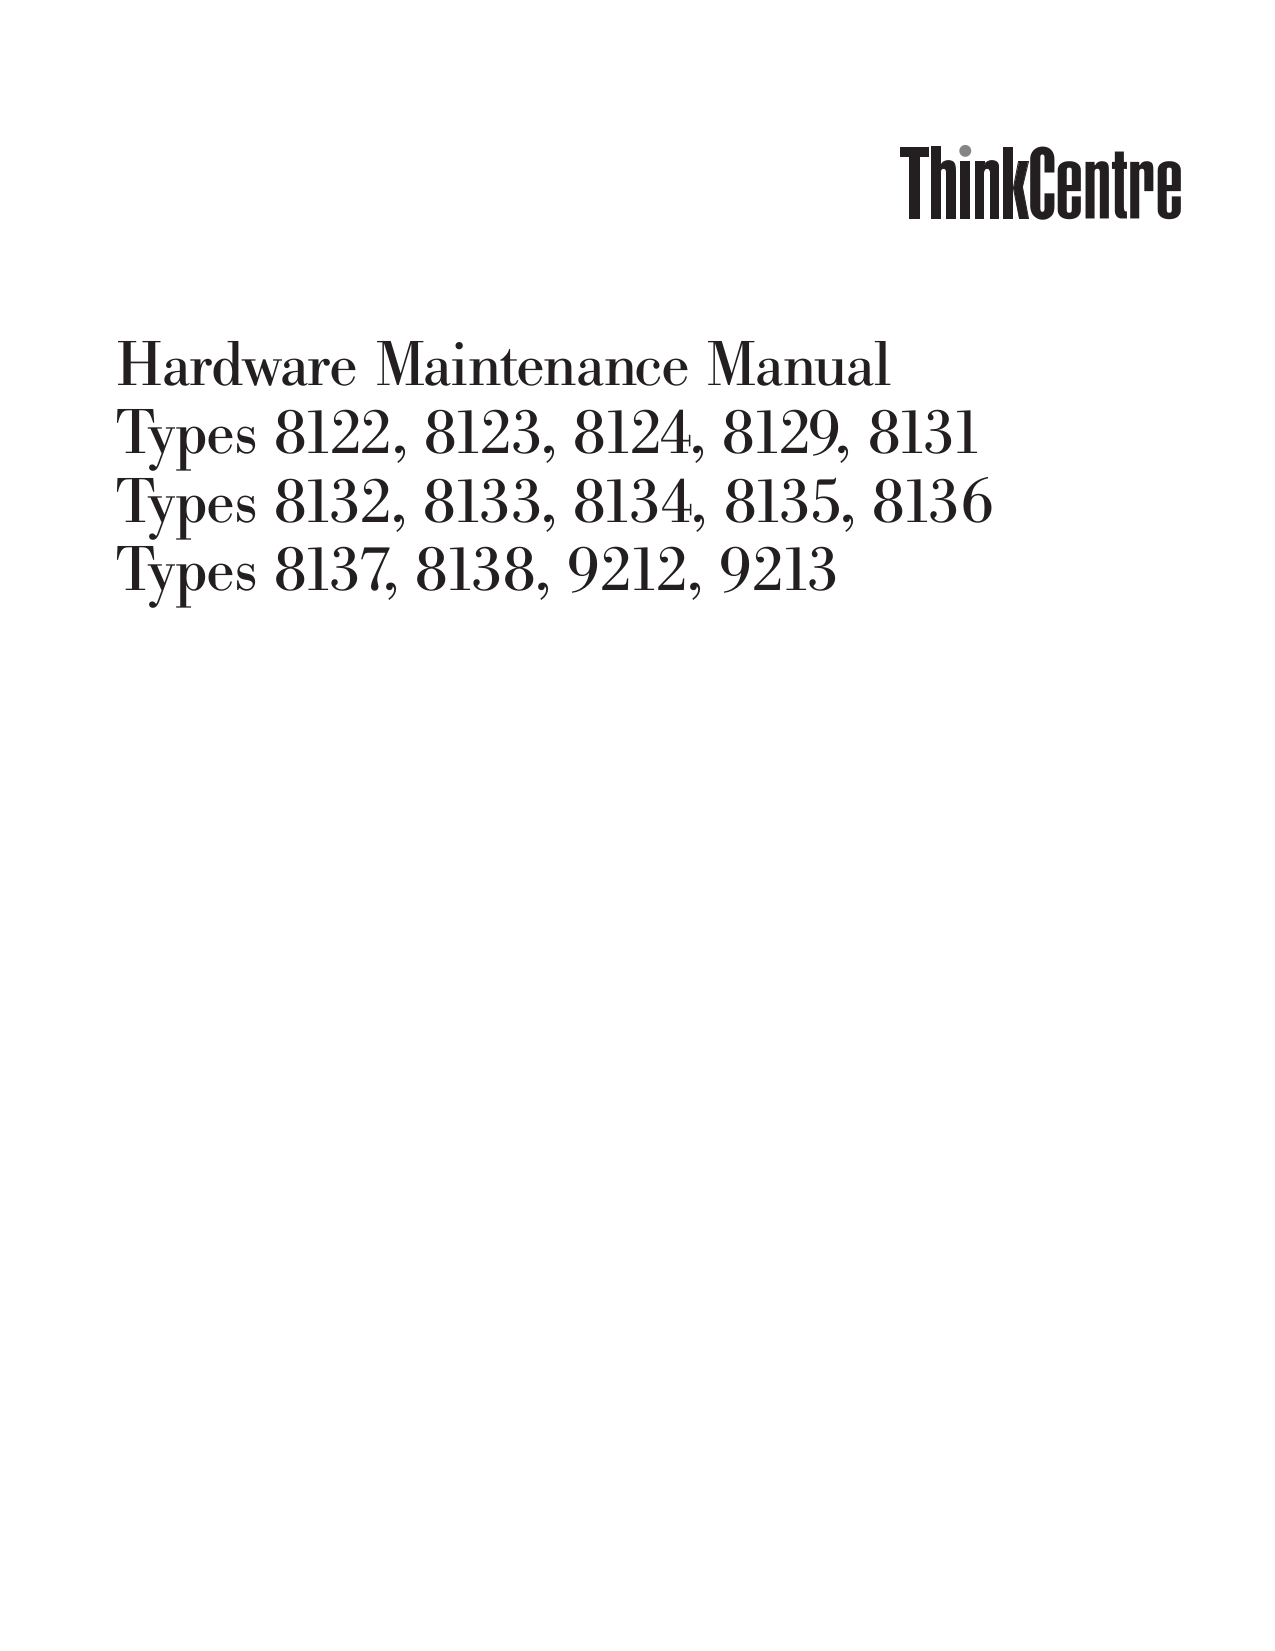 pdf for Lenovo Desktop ThinkCentre A51 8134 manual